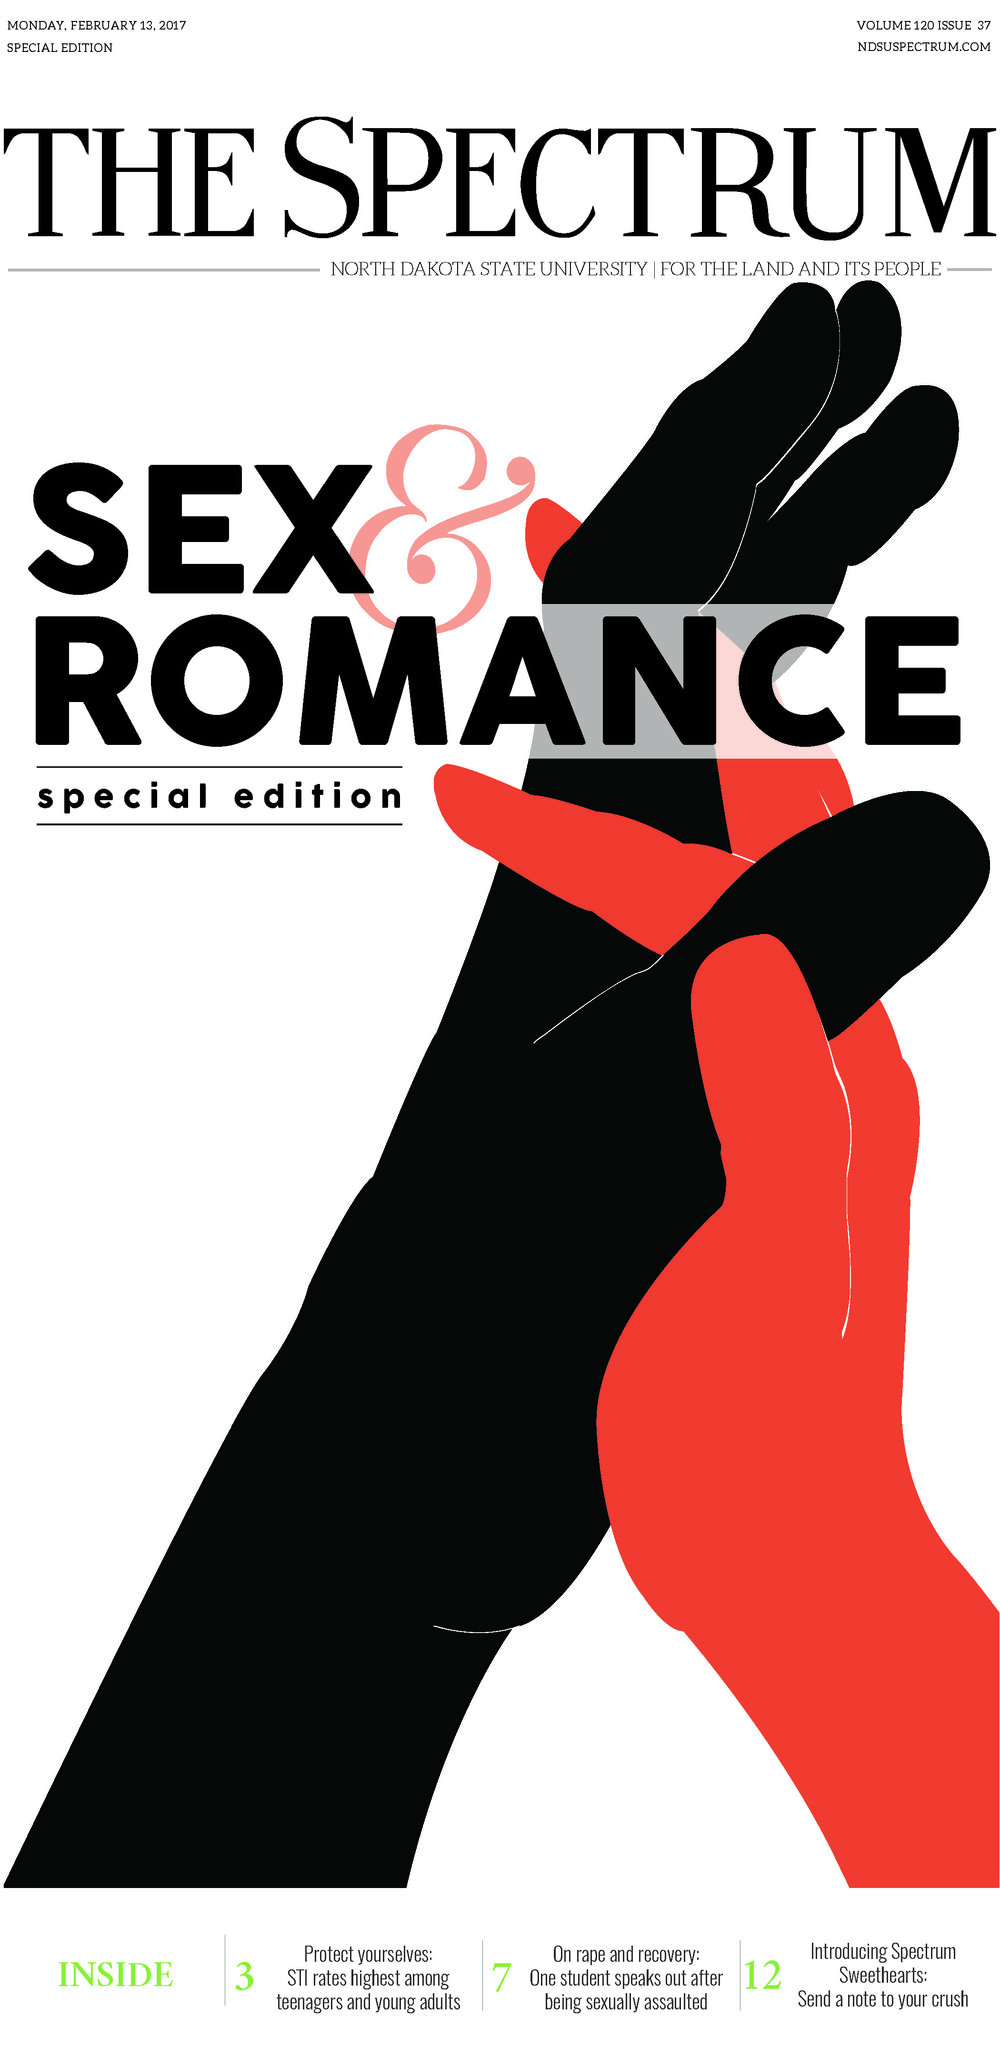 - Front page of our monthly special edition. This issue distributed on Valentine's Day and focused on the college experience with sex, romance, and related issues.